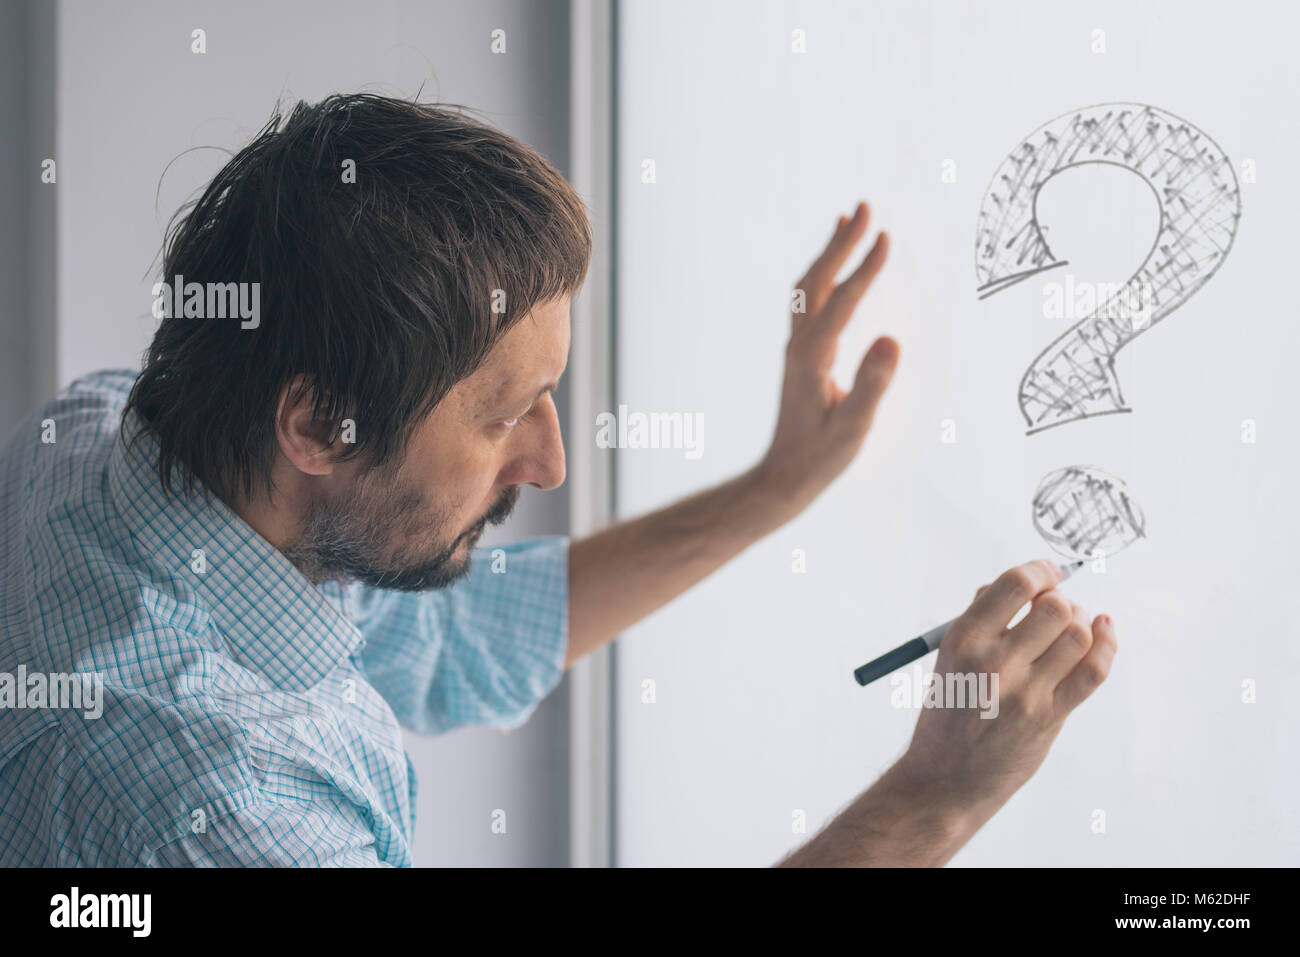 Perplexed businessman drawing question marks on whiteboard in the office, selective focus - Stock Image